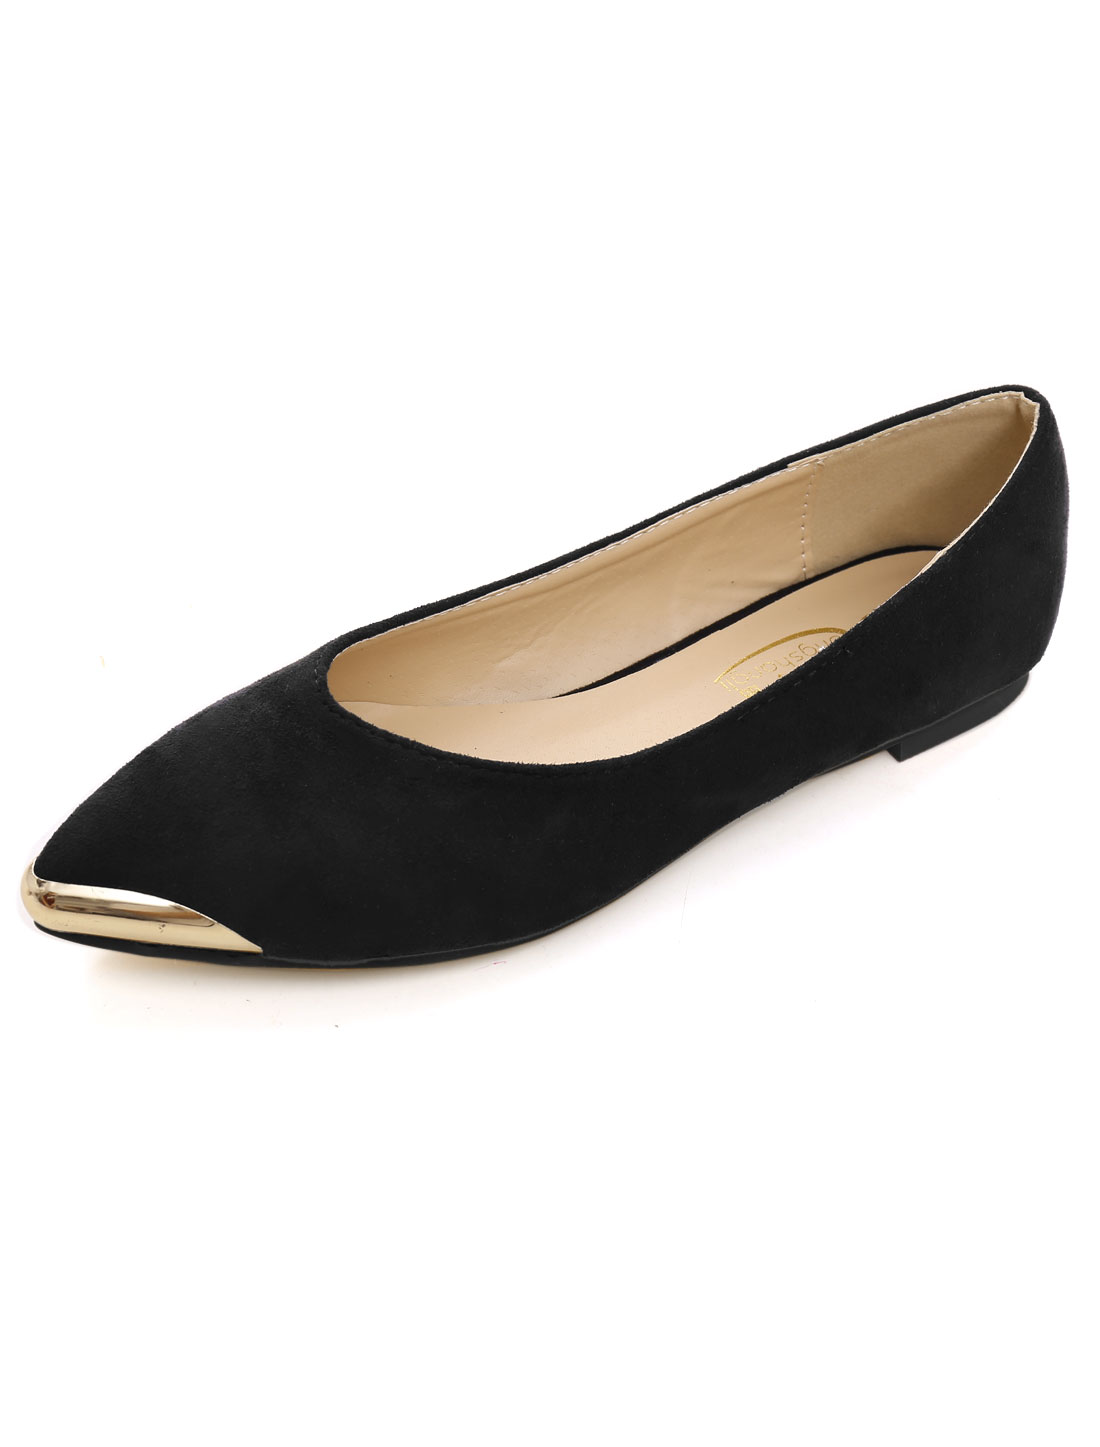 Woman Metallic Decor Toe Faux Suede Pointed Flats Iron Black US 9-9.5